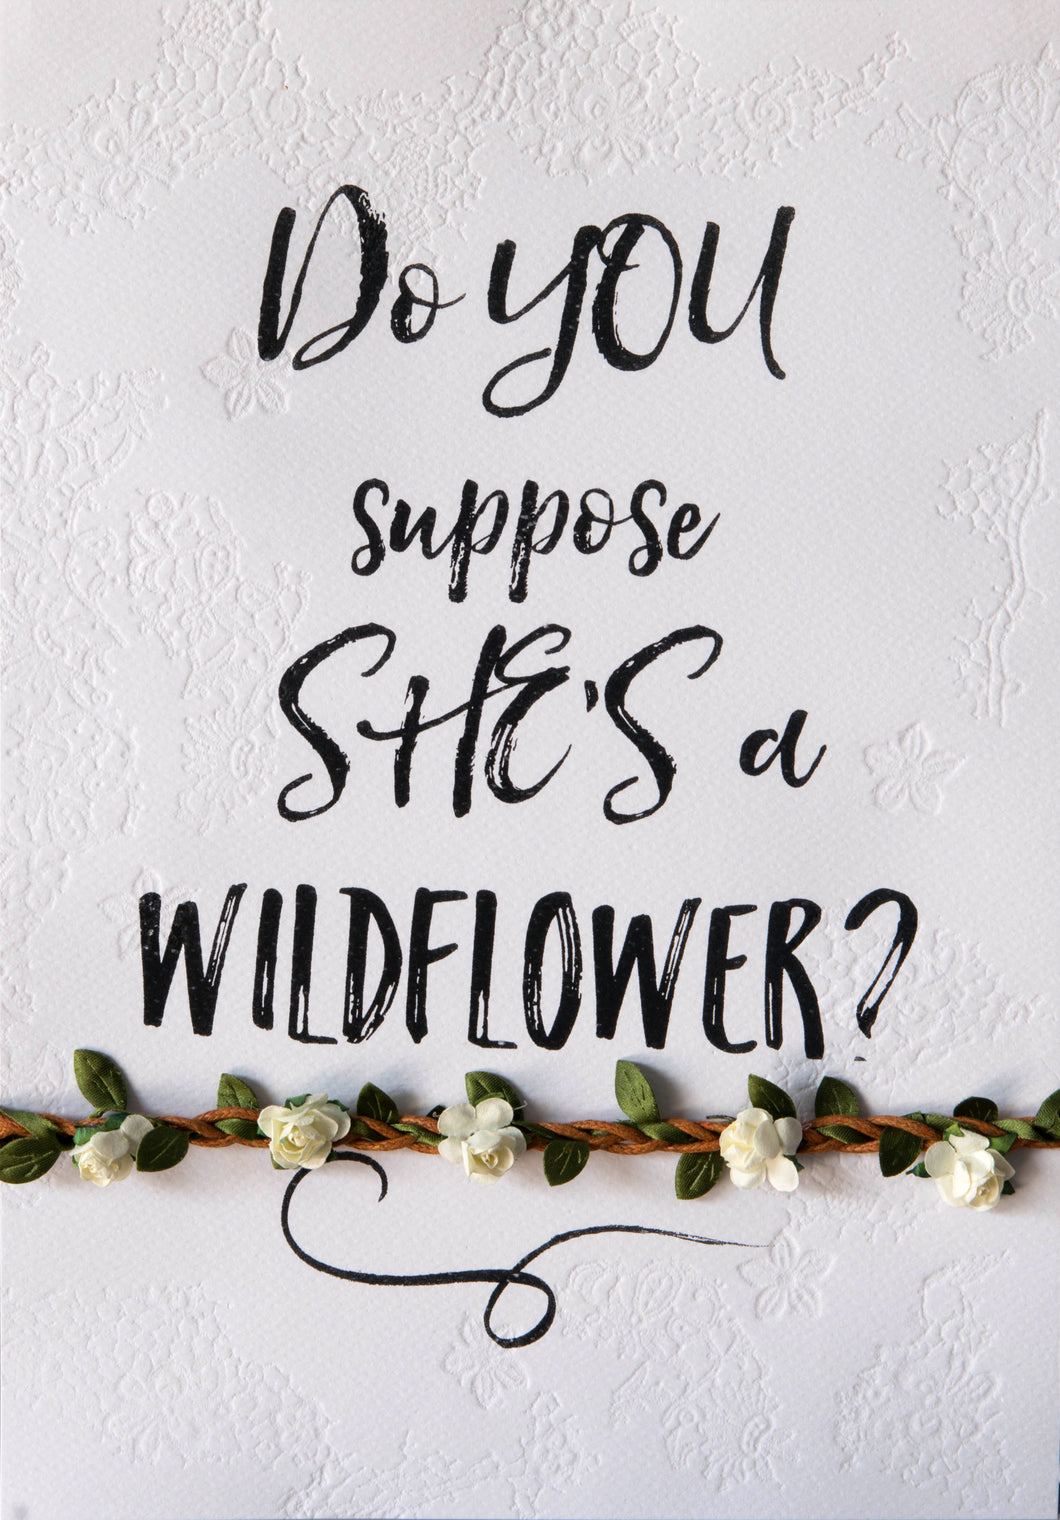 'wildflower' typo